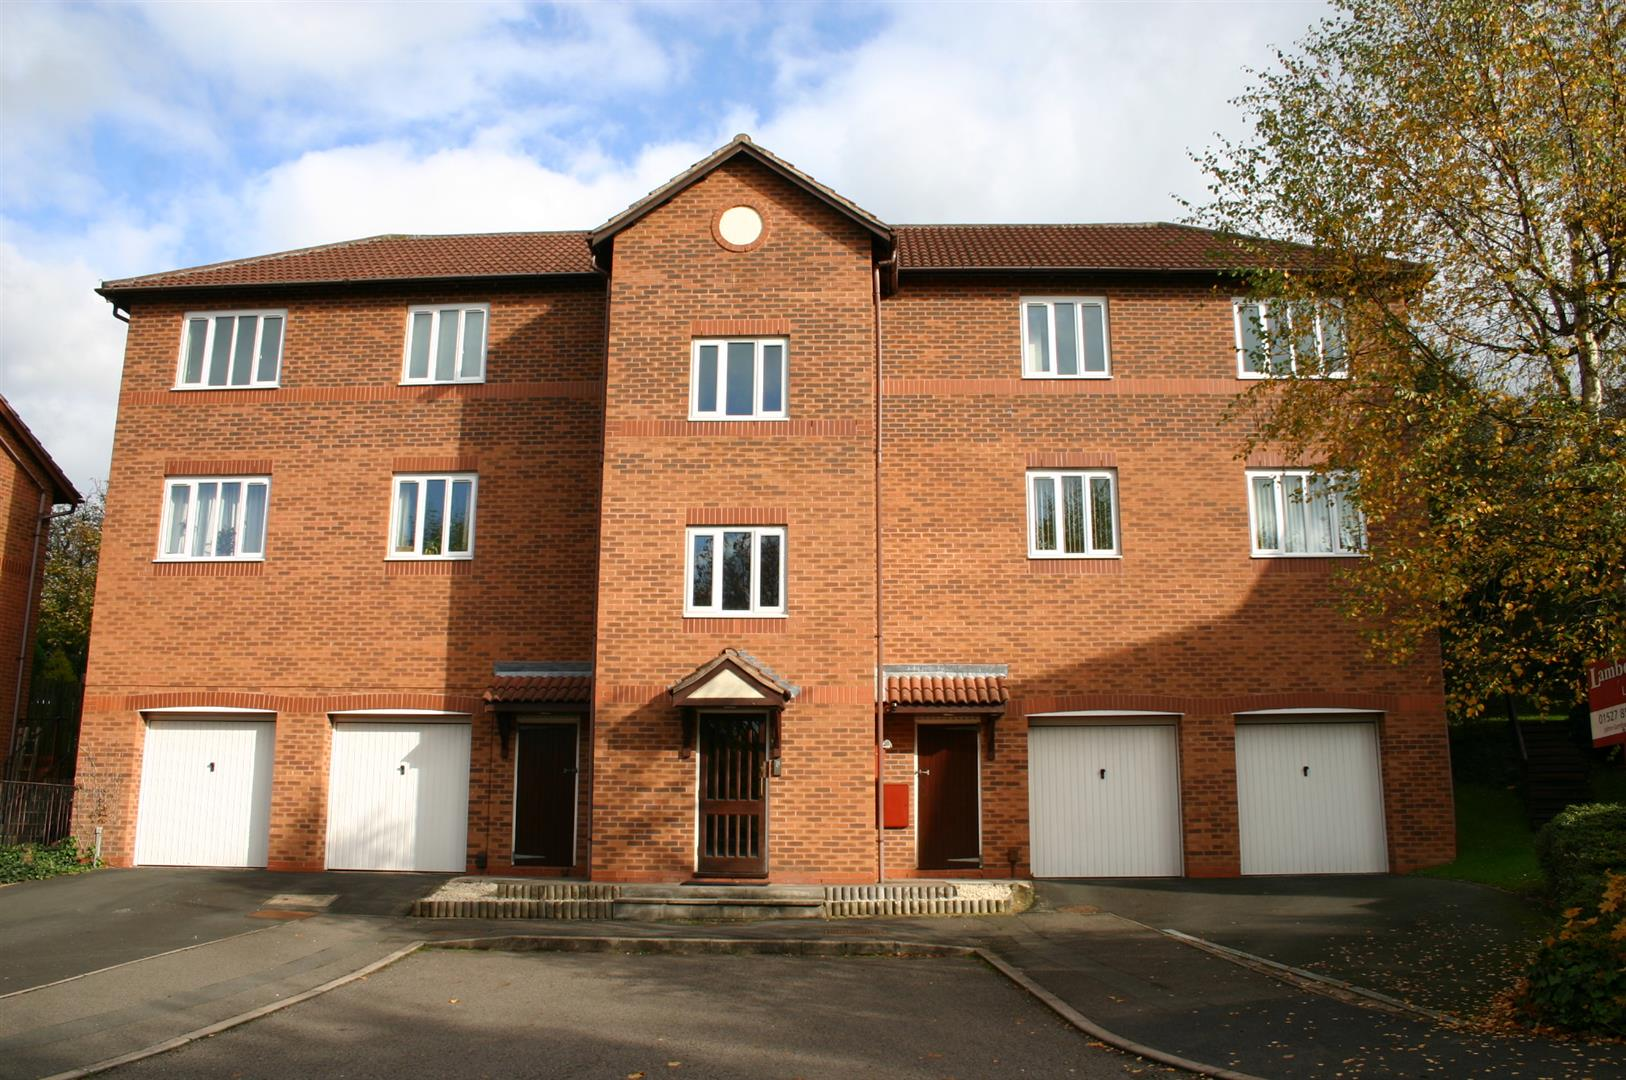 2 Bedrooms Flat for sale in Lydham Close, Redditch